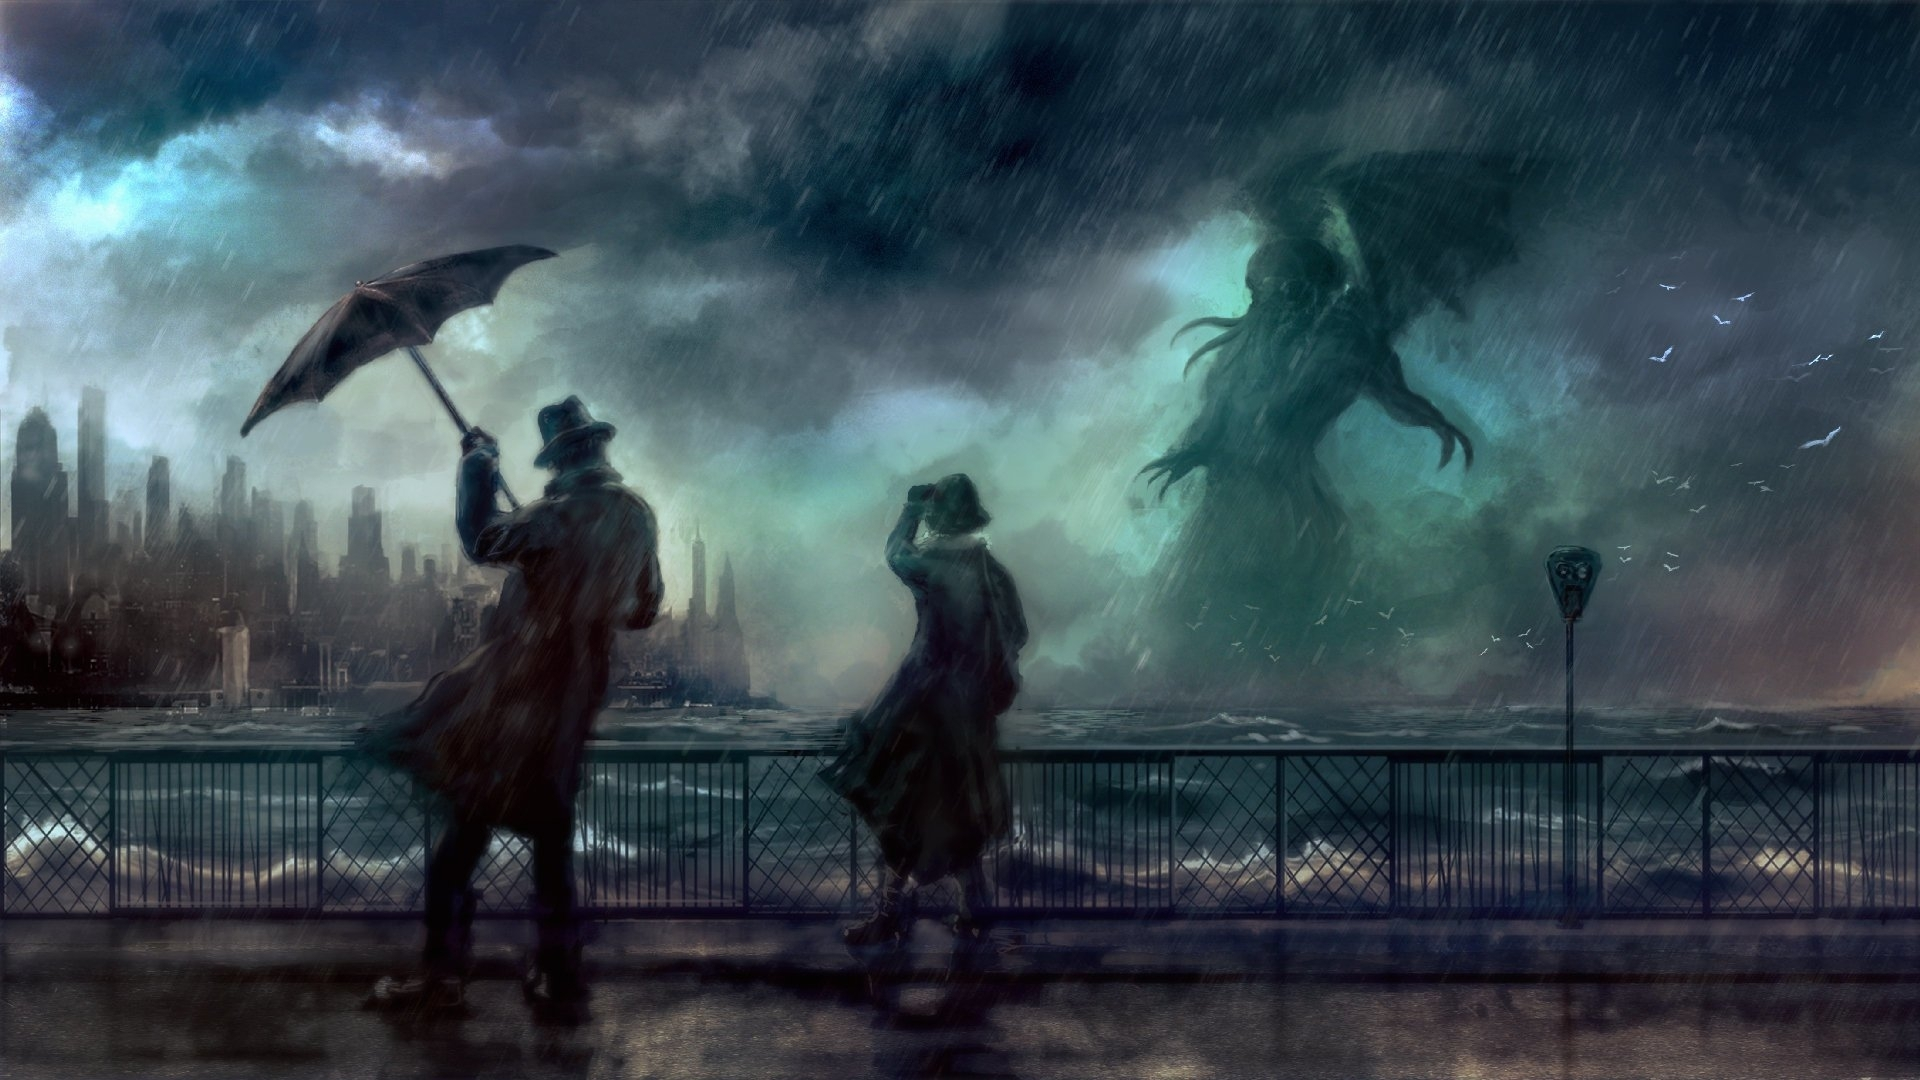 10 h. p. lovecraft hd wallpapers | background images - wallpaper abyss